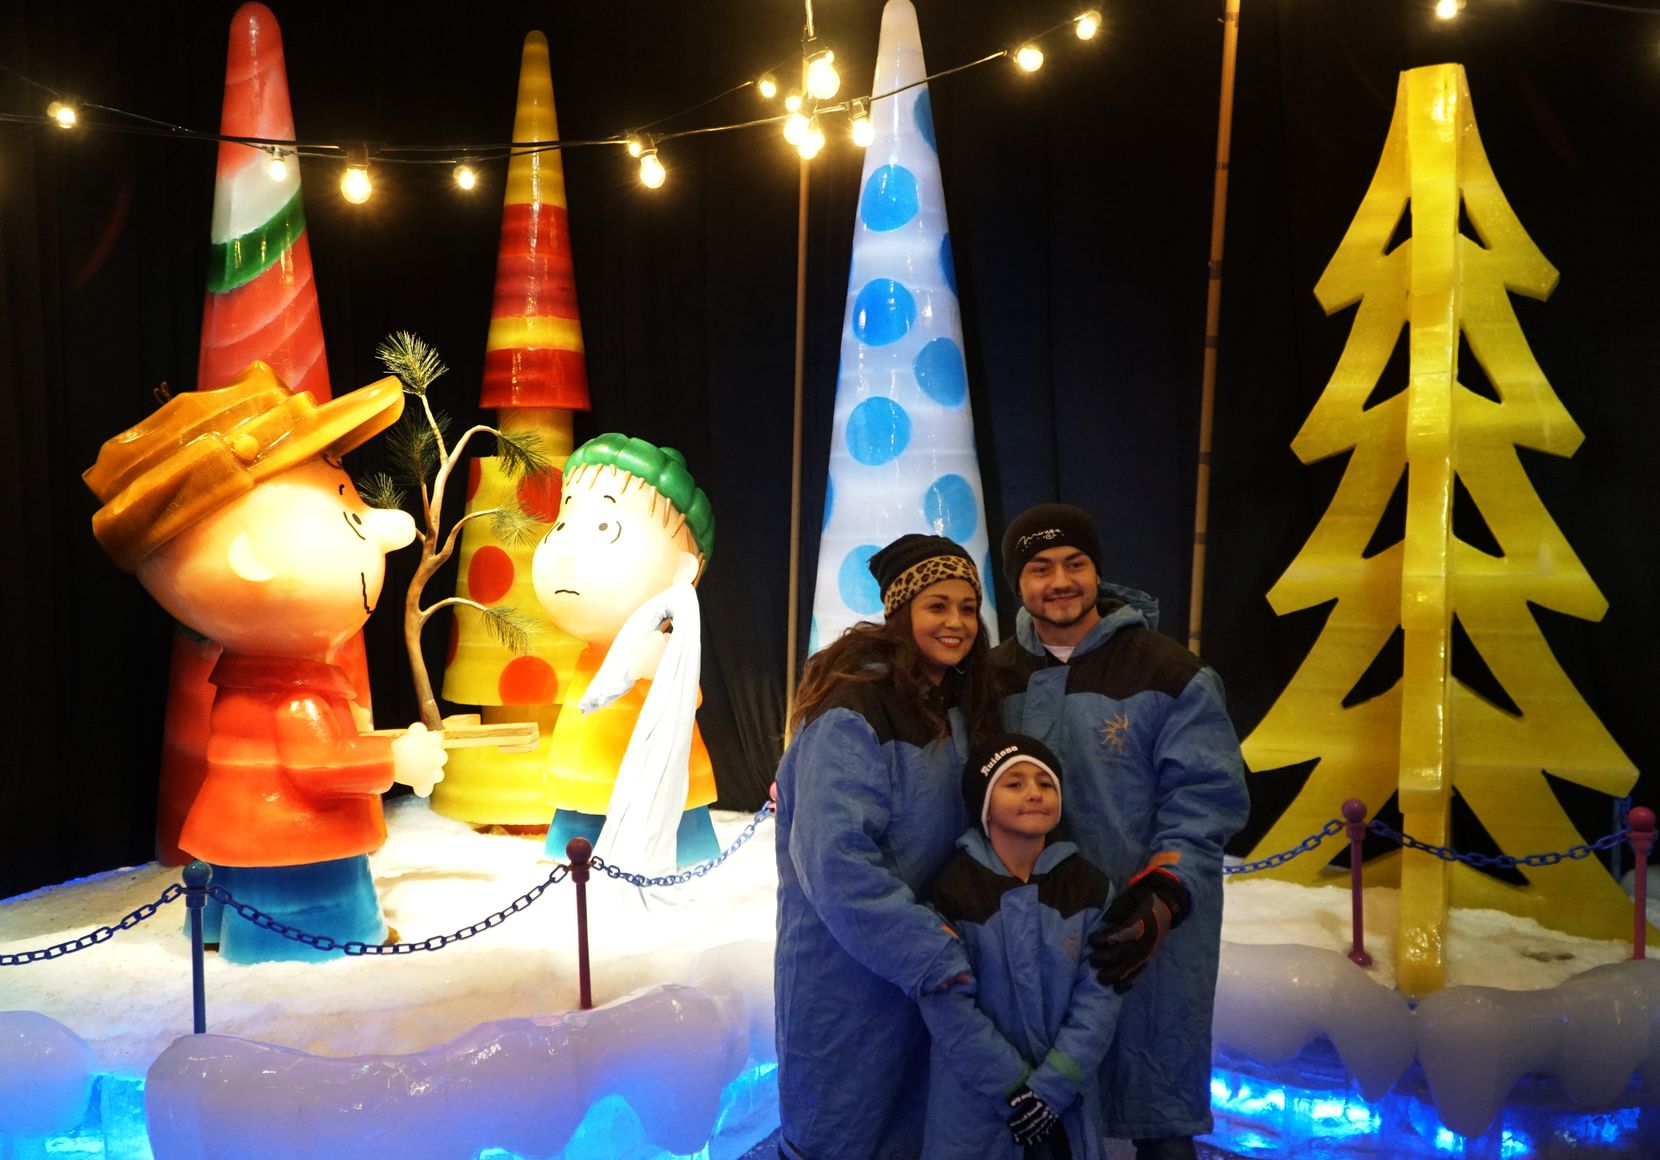 """""""A Charlie Brown Christmas"""" is the theme for this year's """"Ice!"""" exhibit, part of Lone Star Christmas at the Gaylord Texan."""